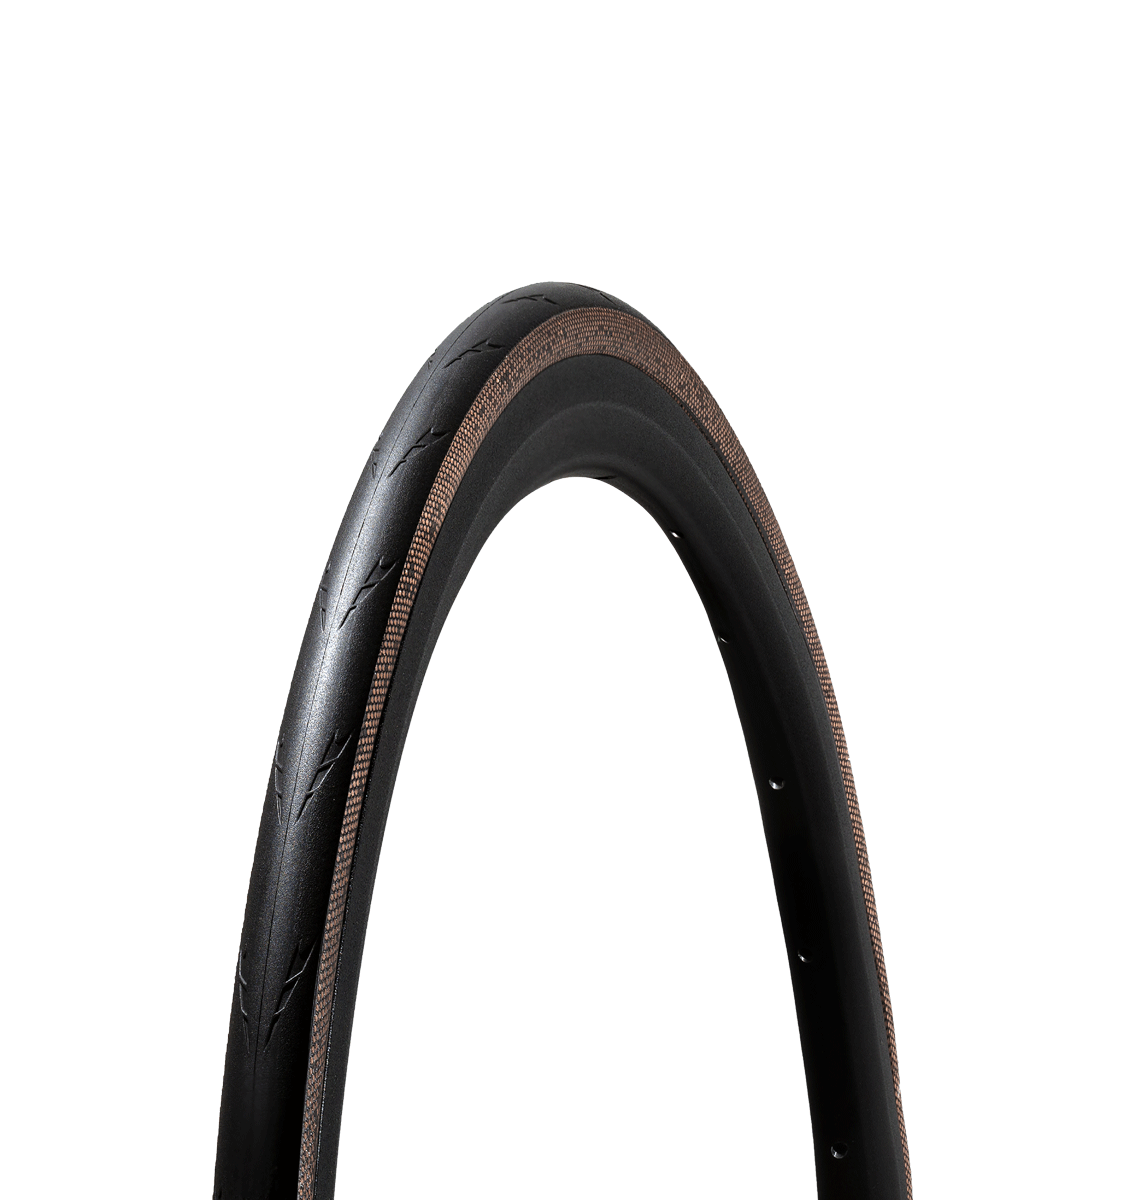 road-bike-tires-tubeless-fusion-gridskin-hutchinson-made-in-france-3